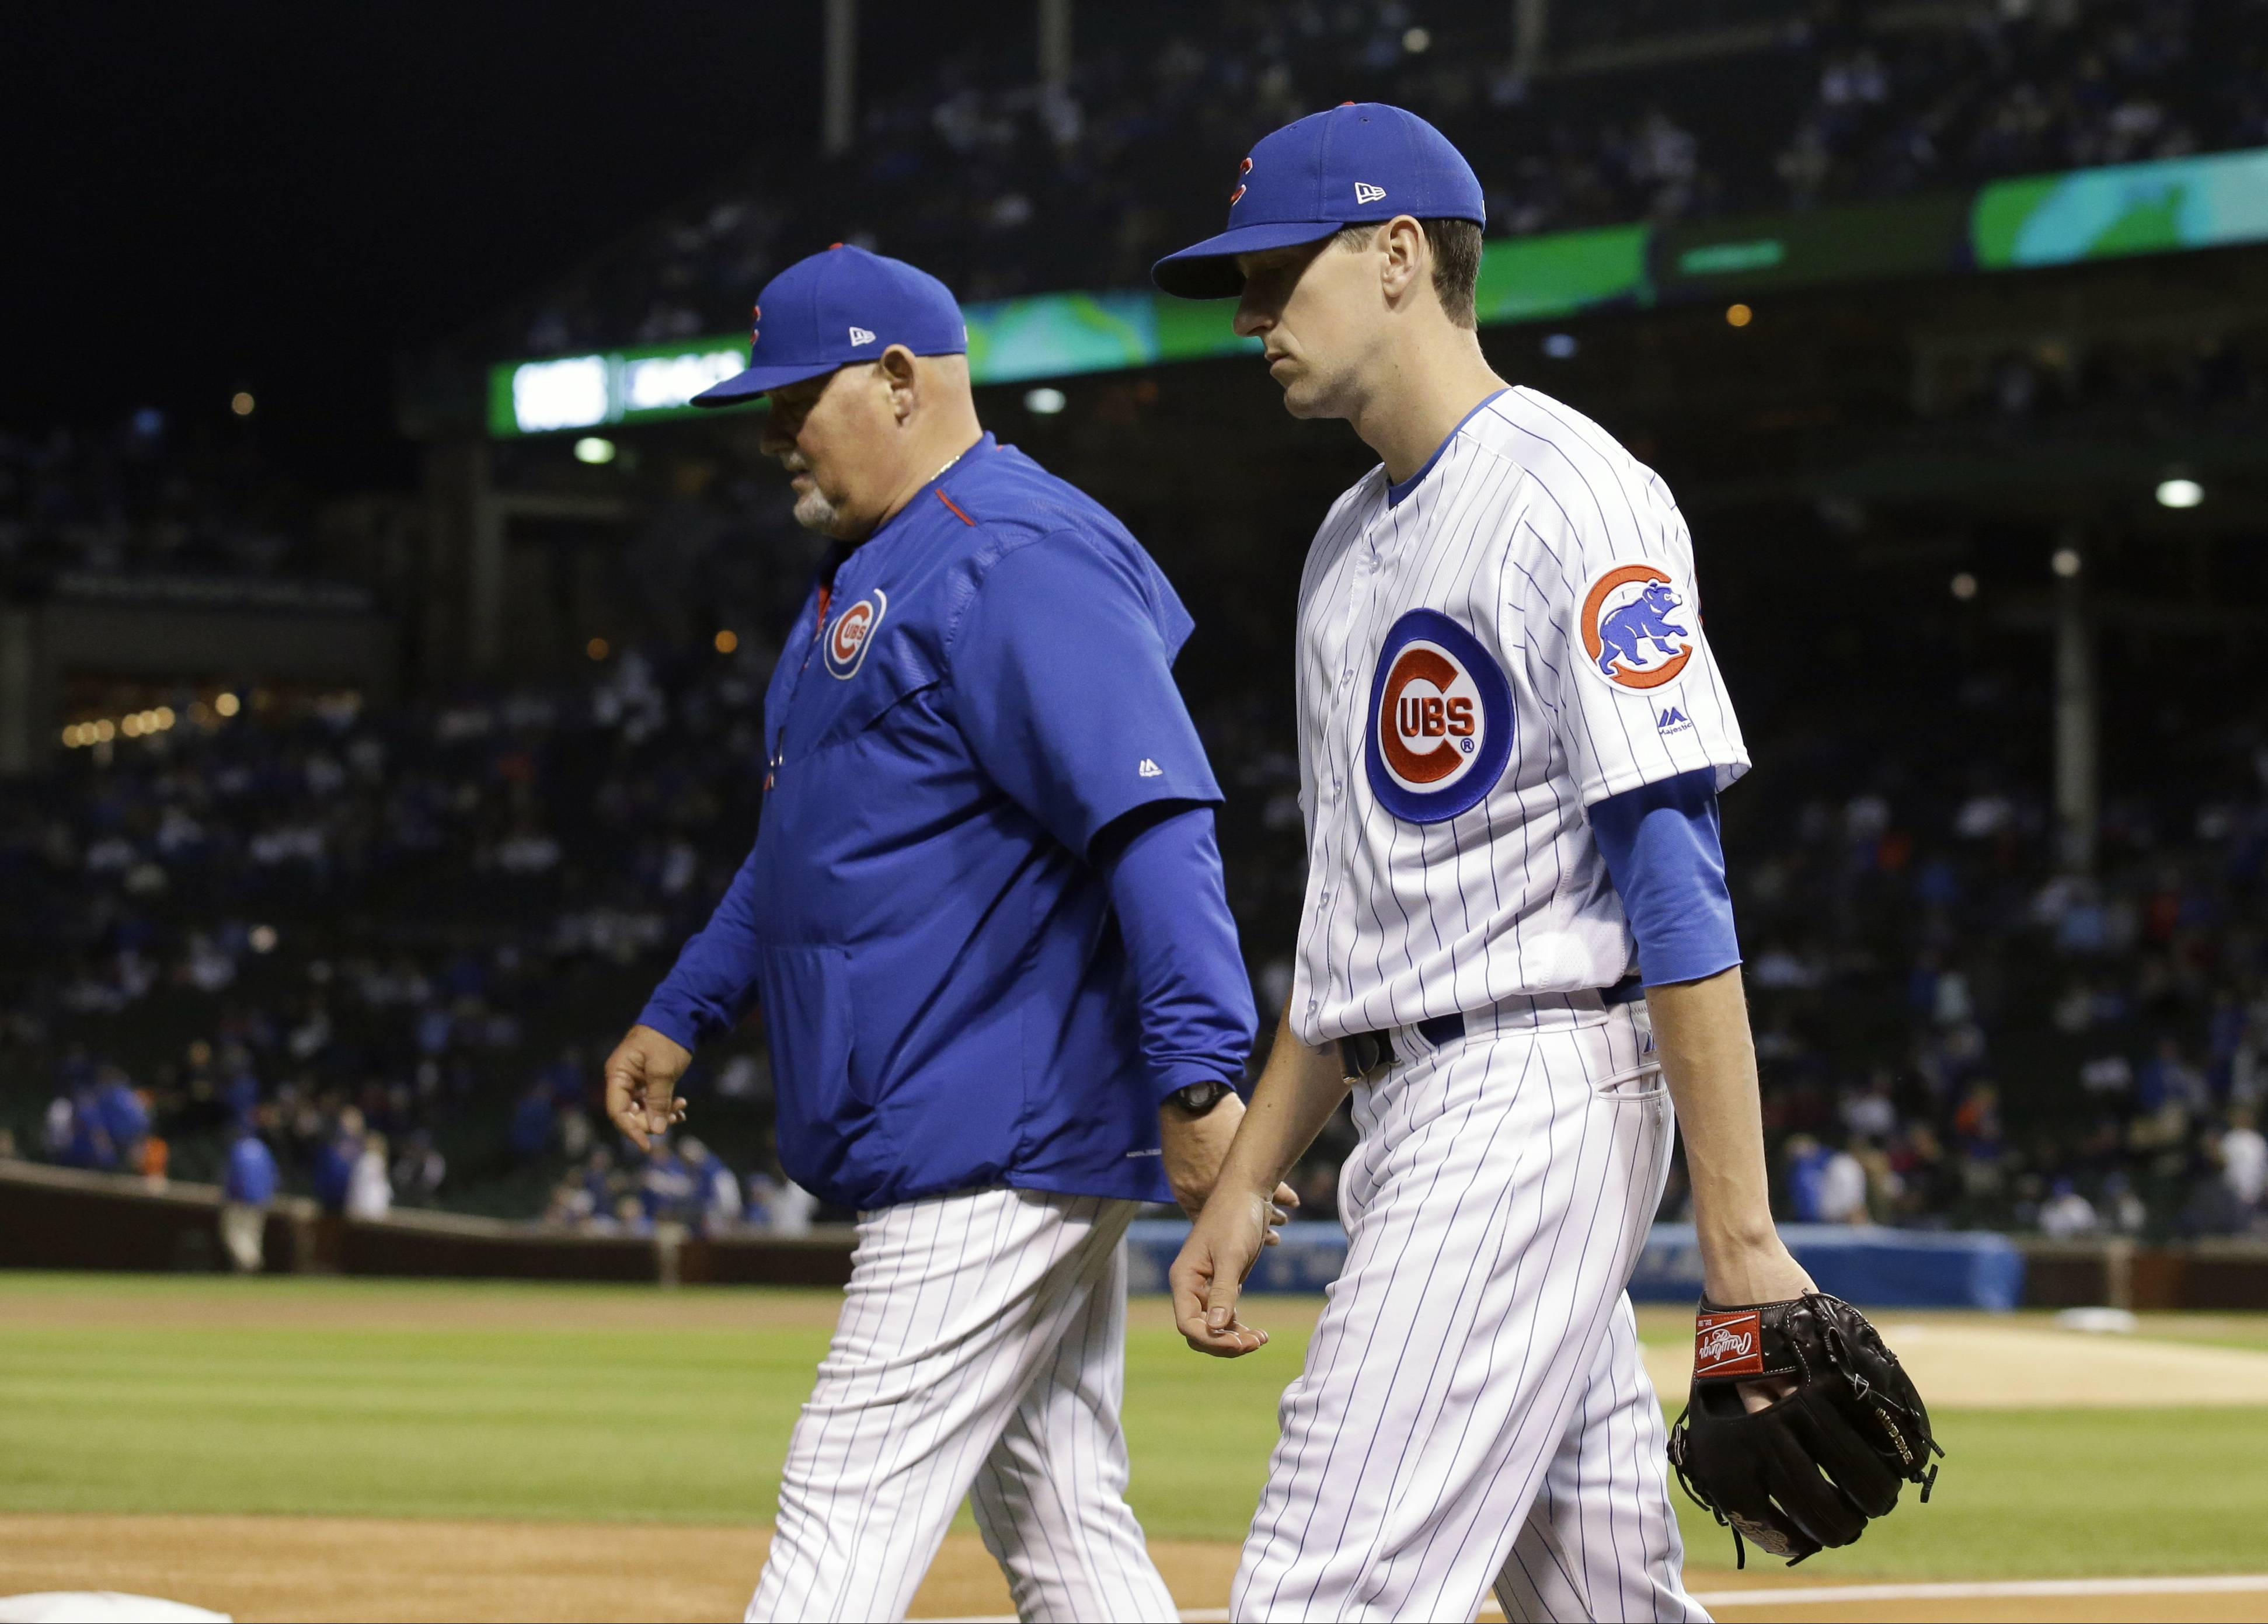 Chicago Cubs pitching coach Chris Bosio, here talking with starting pitcher Kyle Hendricks, will not be back with the team next season, according to reports.